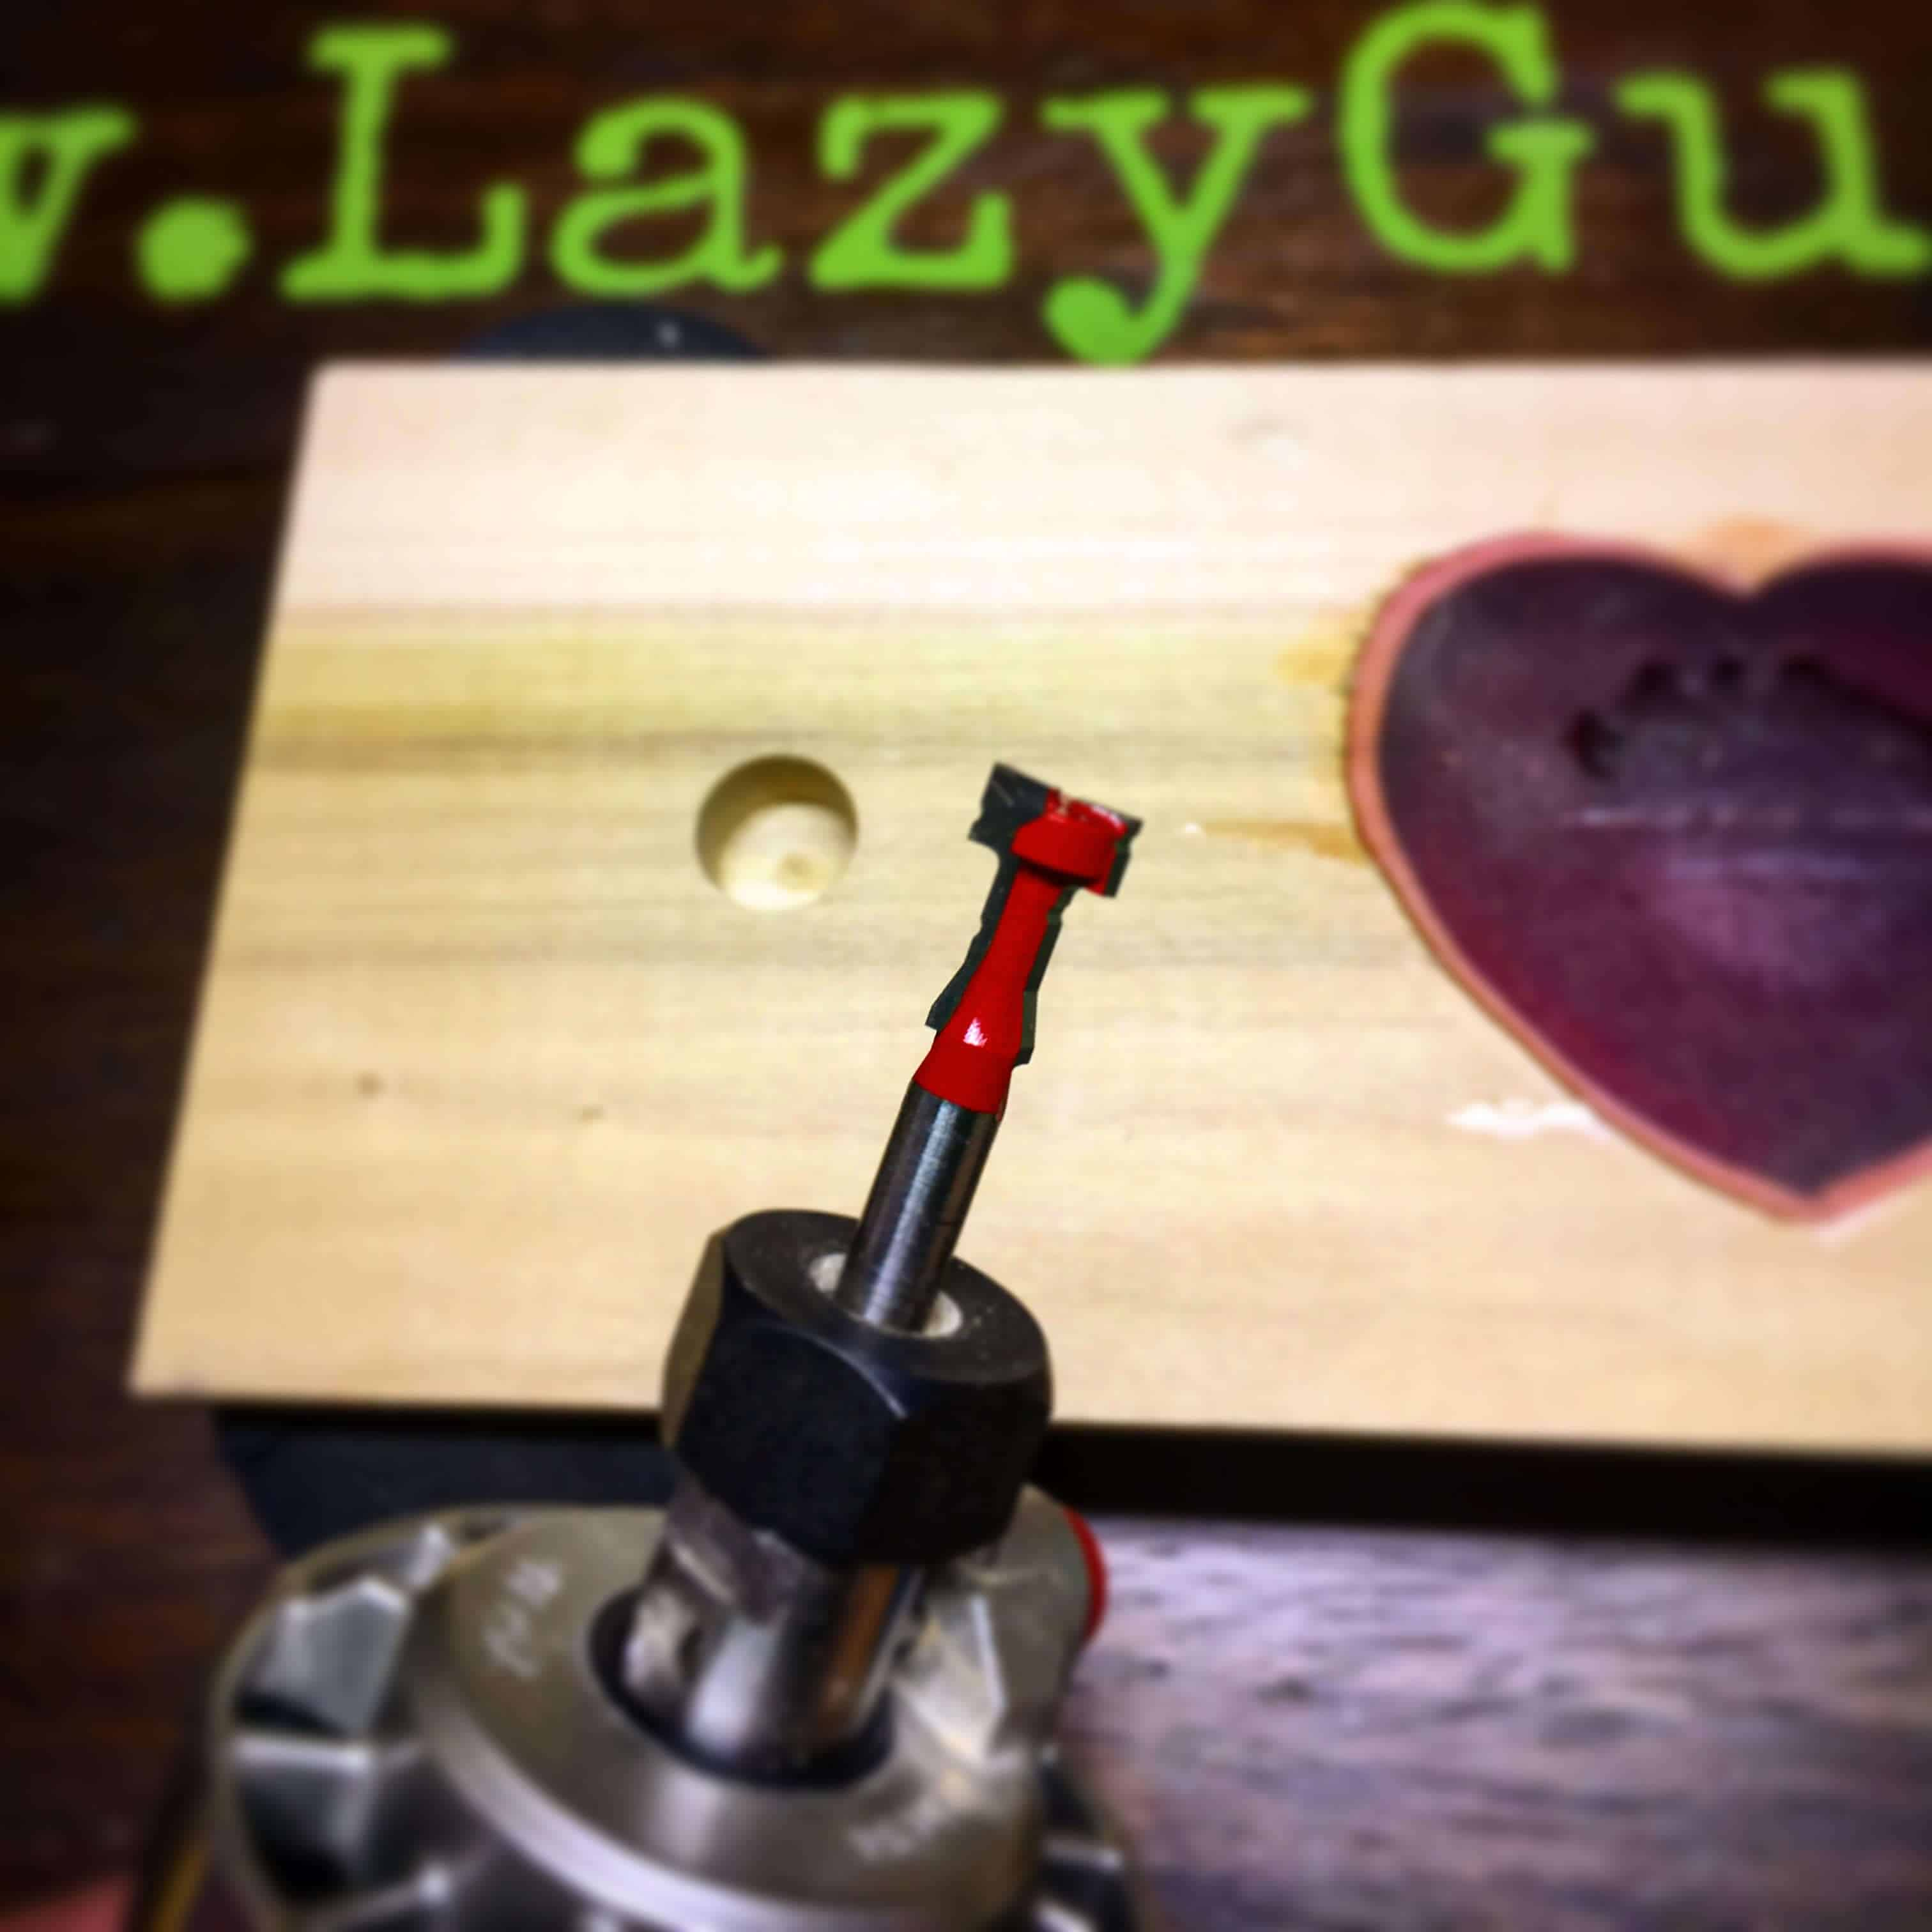 Rustic Magnetic Key Holder With Epoxy Cutout - Lazy Guy DIY